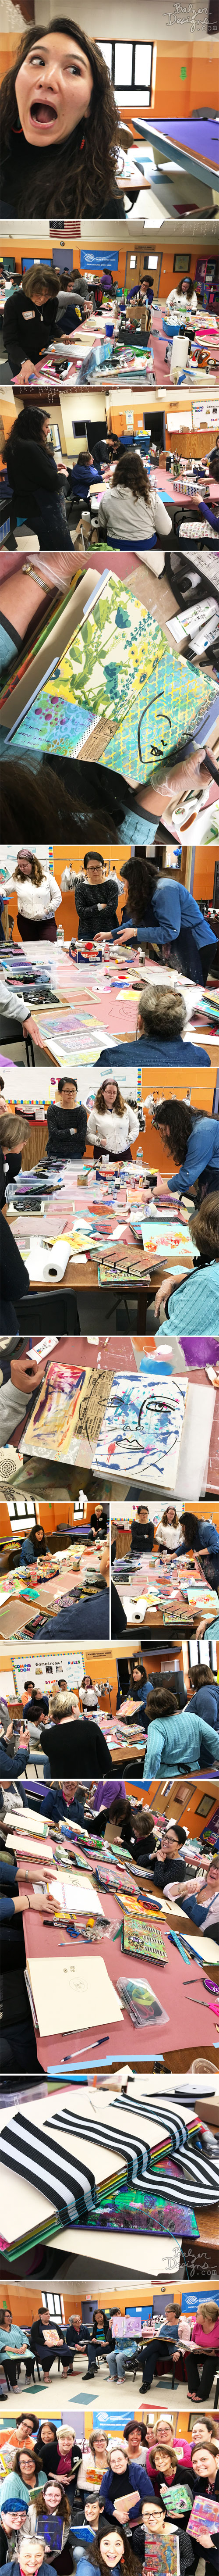 From the Balzer Designs Blog: Two-Day Art Journaling Workshop